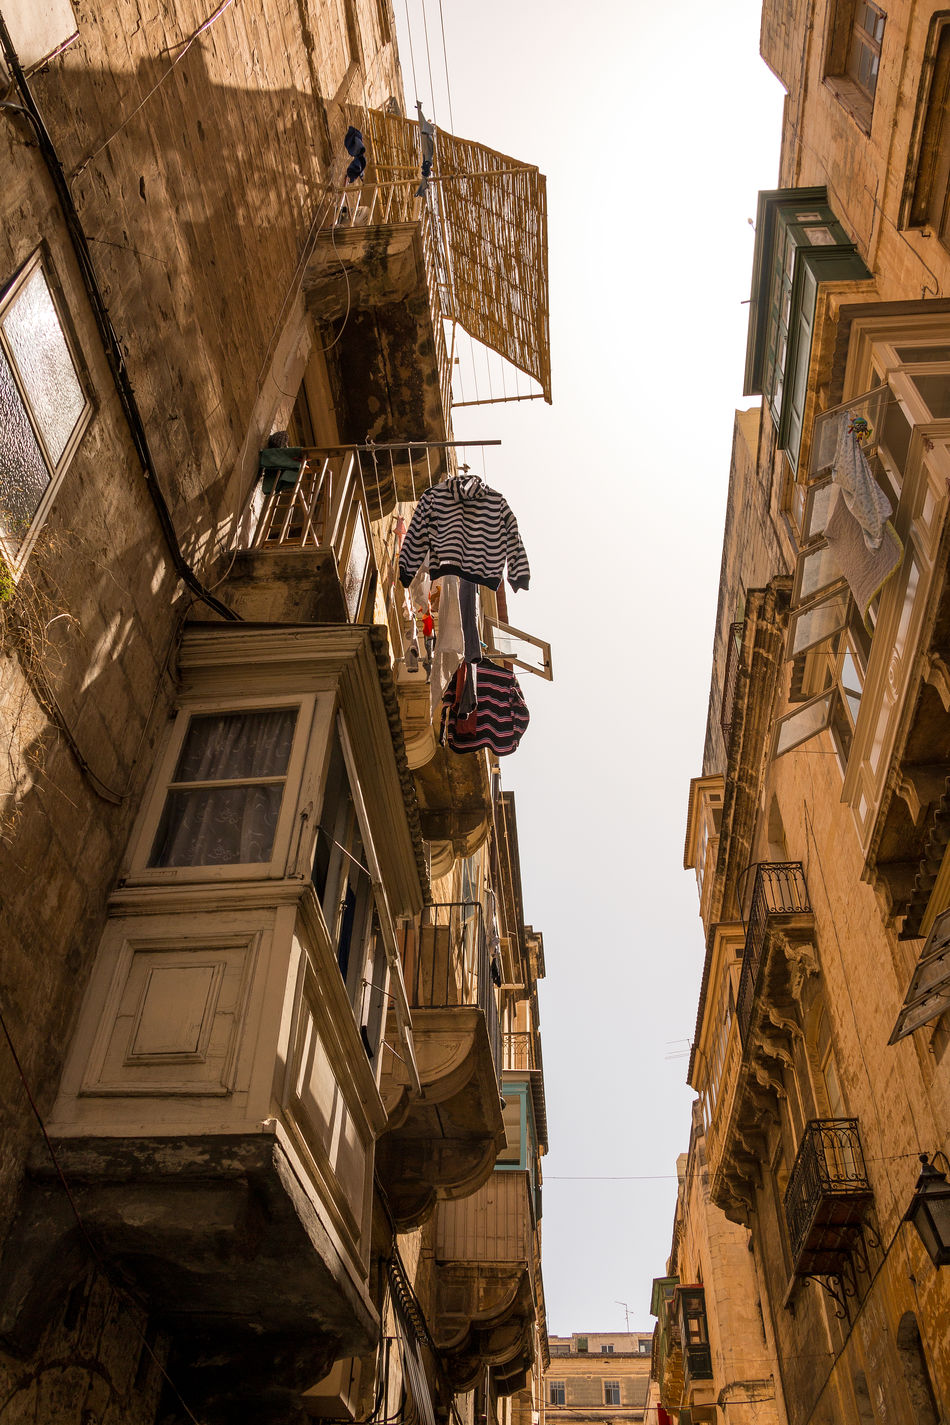 Malta II Architecture Attraction Beige Tones Building Exterior Canon70d Capital City City Life Destination Europa Europe EyeEm Best Shots Island Laundry Lookup Low Angle View Outdoor Sky Streetphotography This Week On Eyeem Tourism Tourist Travel Vacation Valletta,Malta